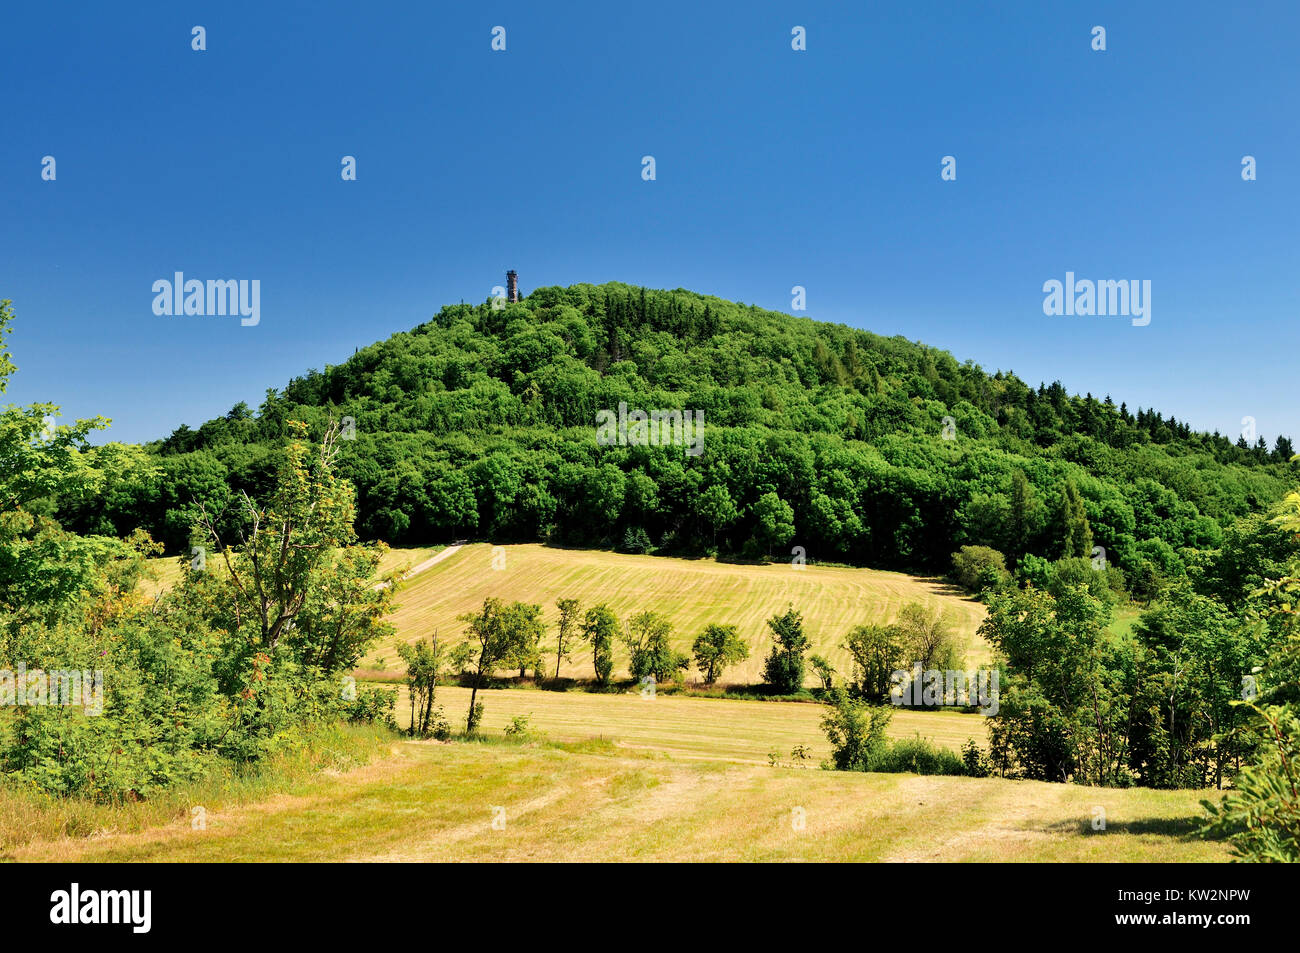 Mountain Geising with observation tower, Osterzgebirge, Geisingberg mit Aussichtsturm - Stock Image